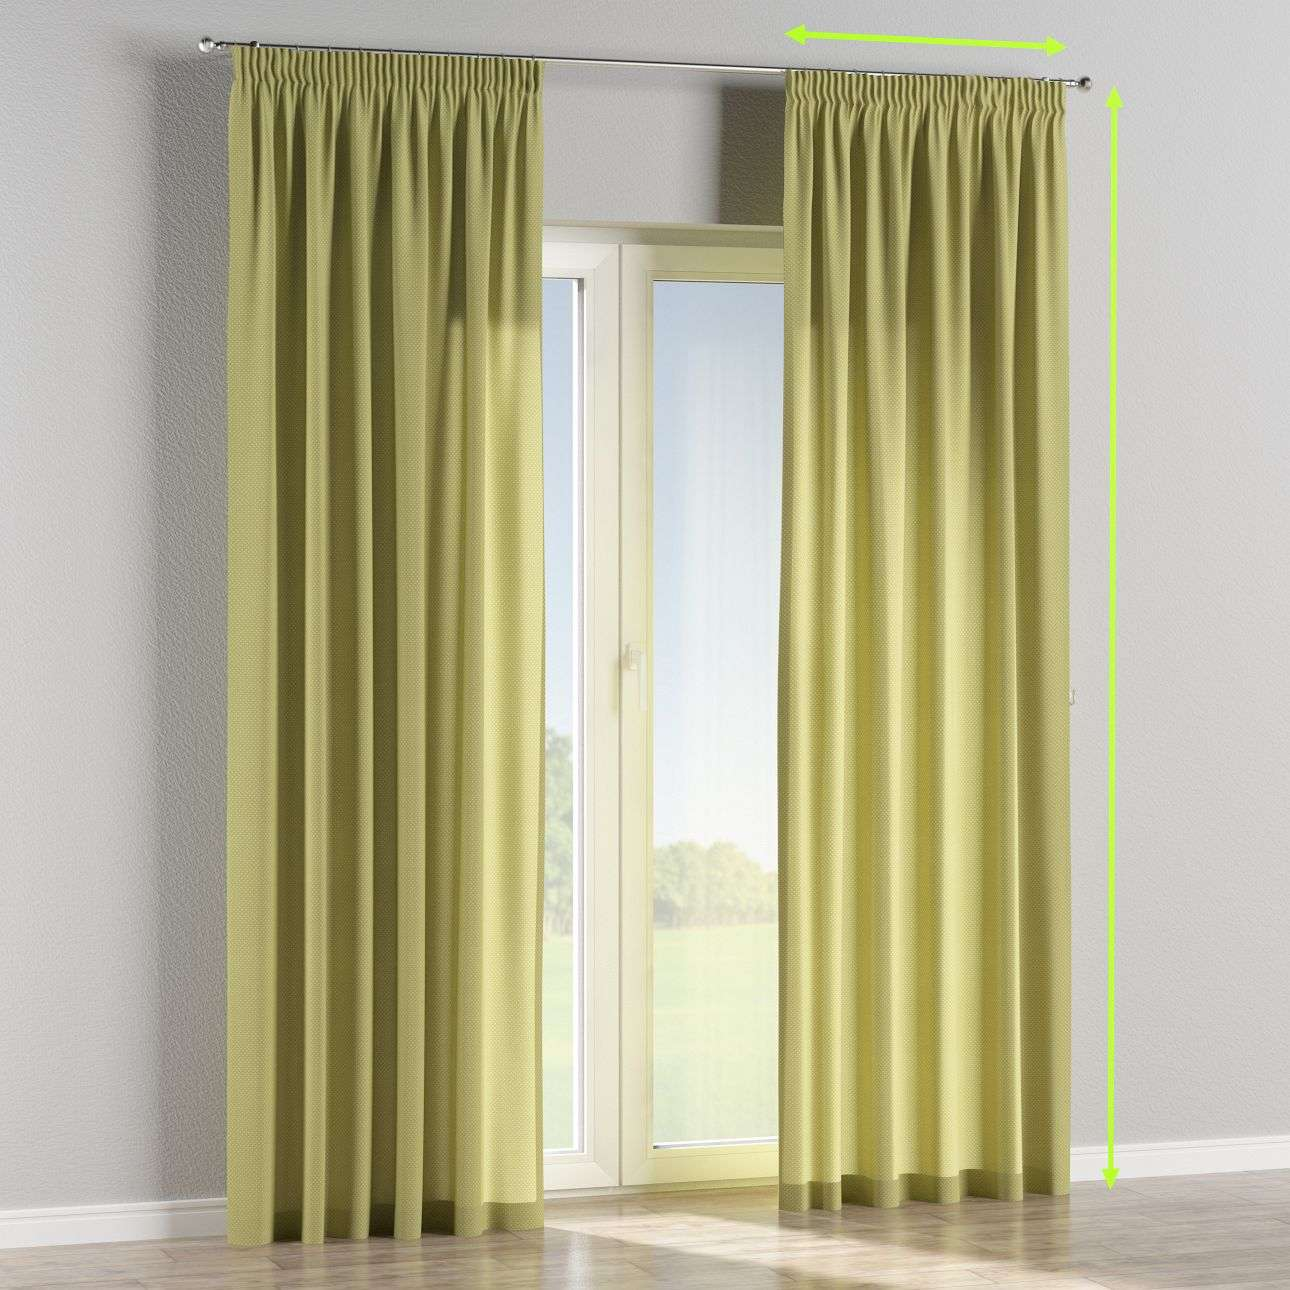 Pencil pleat curtains in collection Ashley, fabric: 137-51